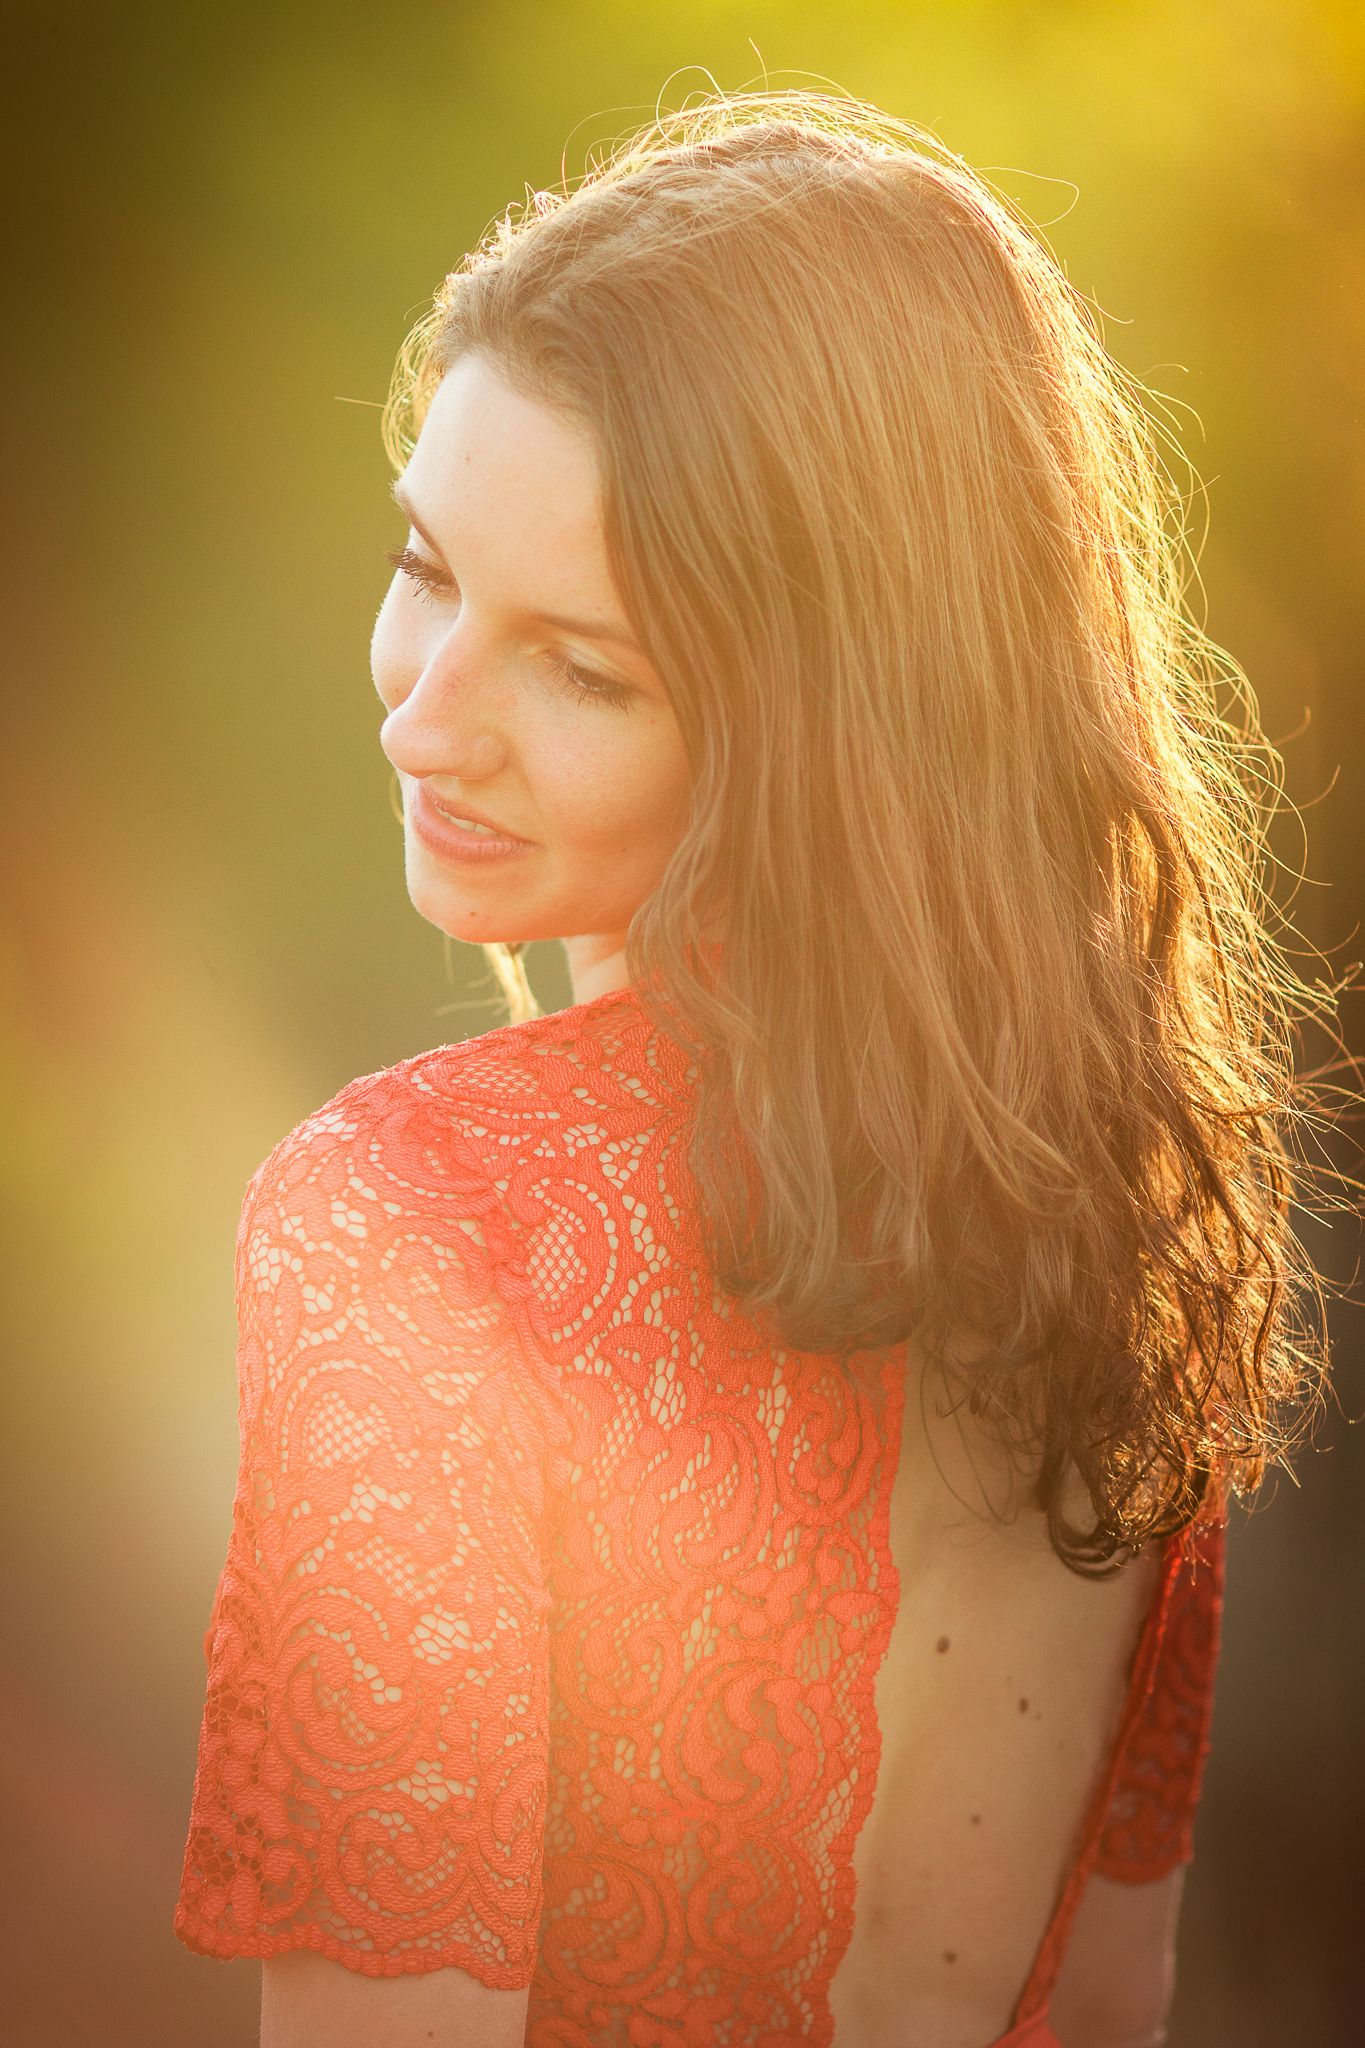 Portretfotografie Veldhoven – Love, Lace & Light